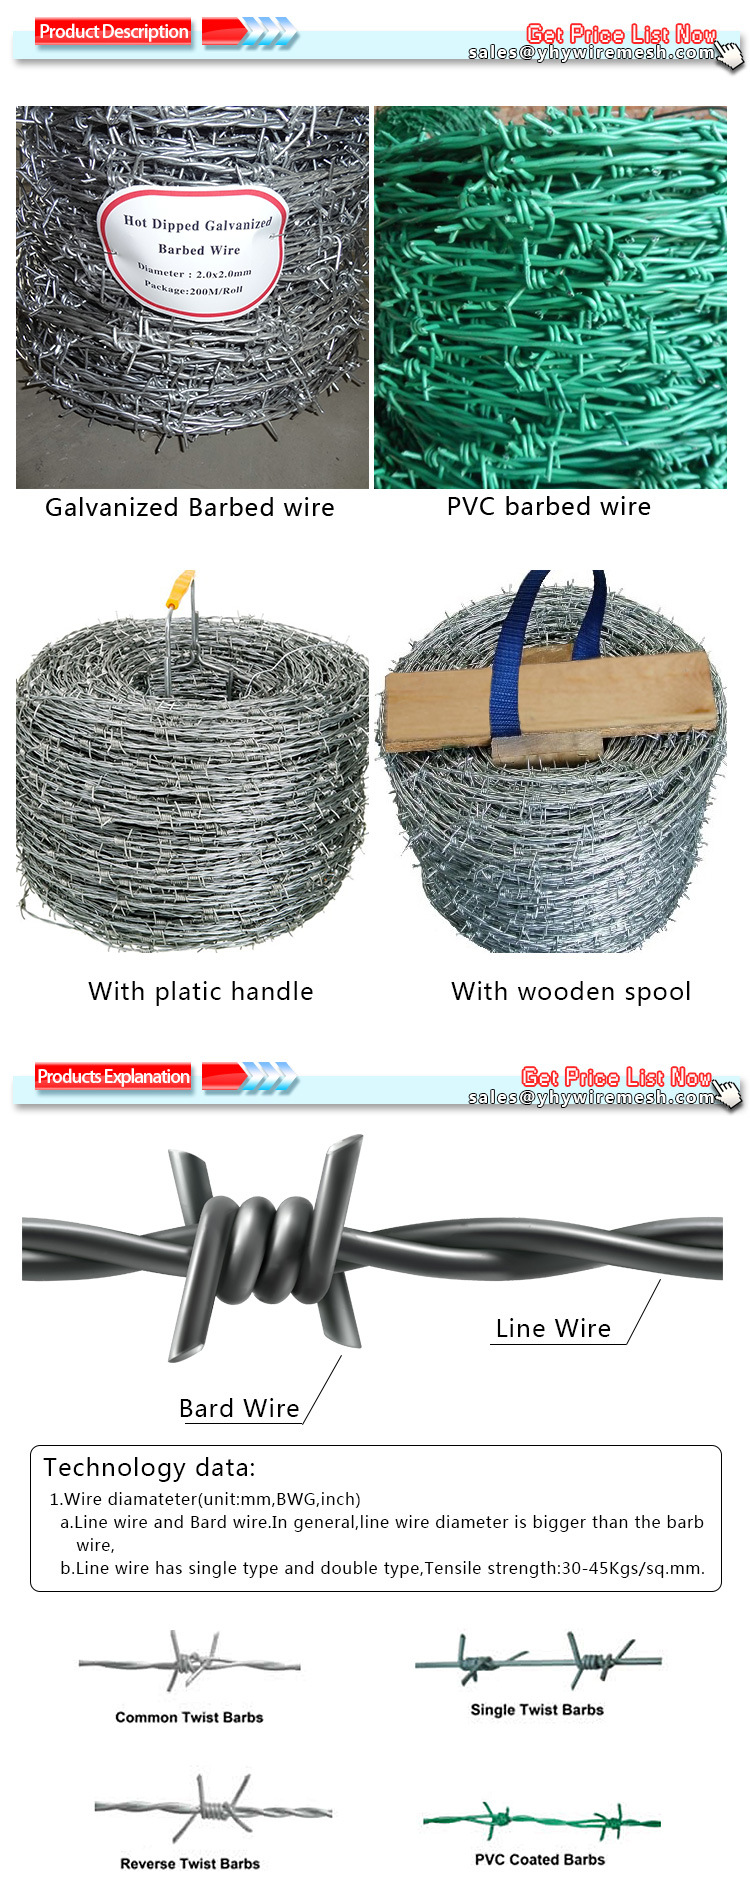 Hot Dipped Galvanized Barbed Wire Fence Used for Protect